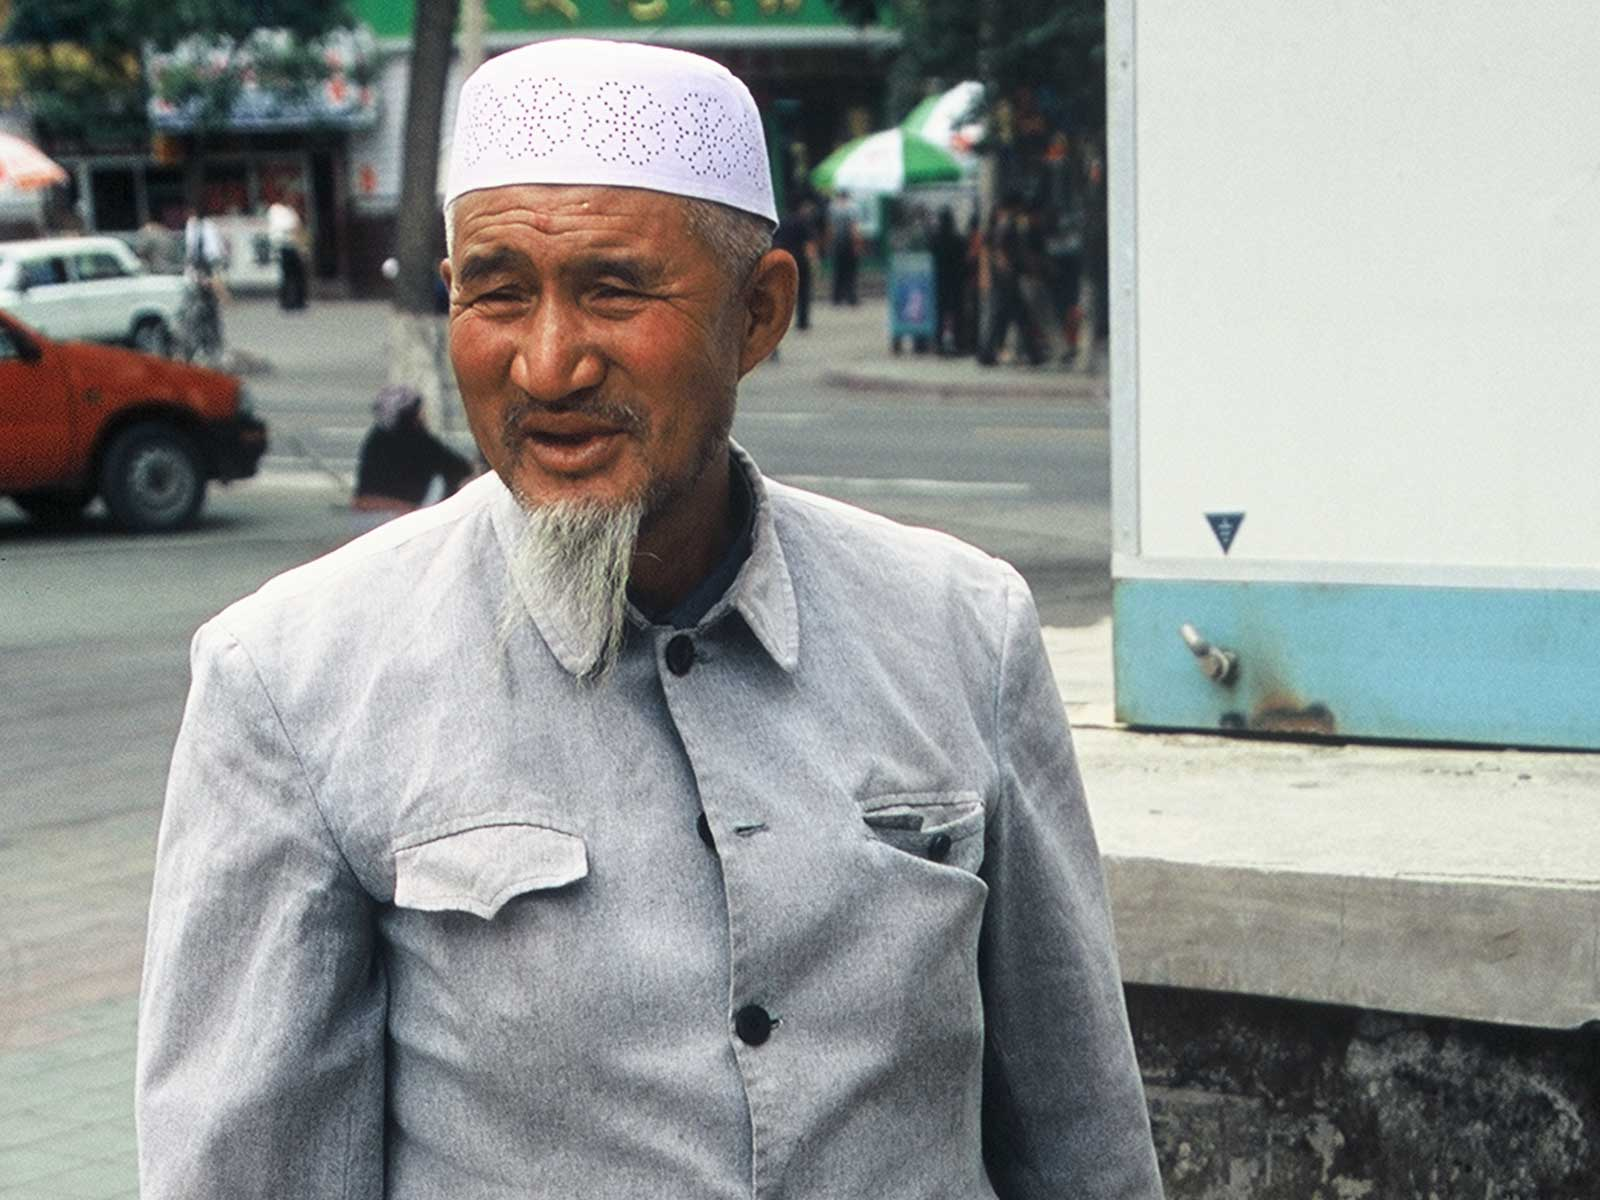 Hui Culture Urumqi Xinjiang - Chinese Muslims - Silk Road Journal - Steven Andrew Martin PhD